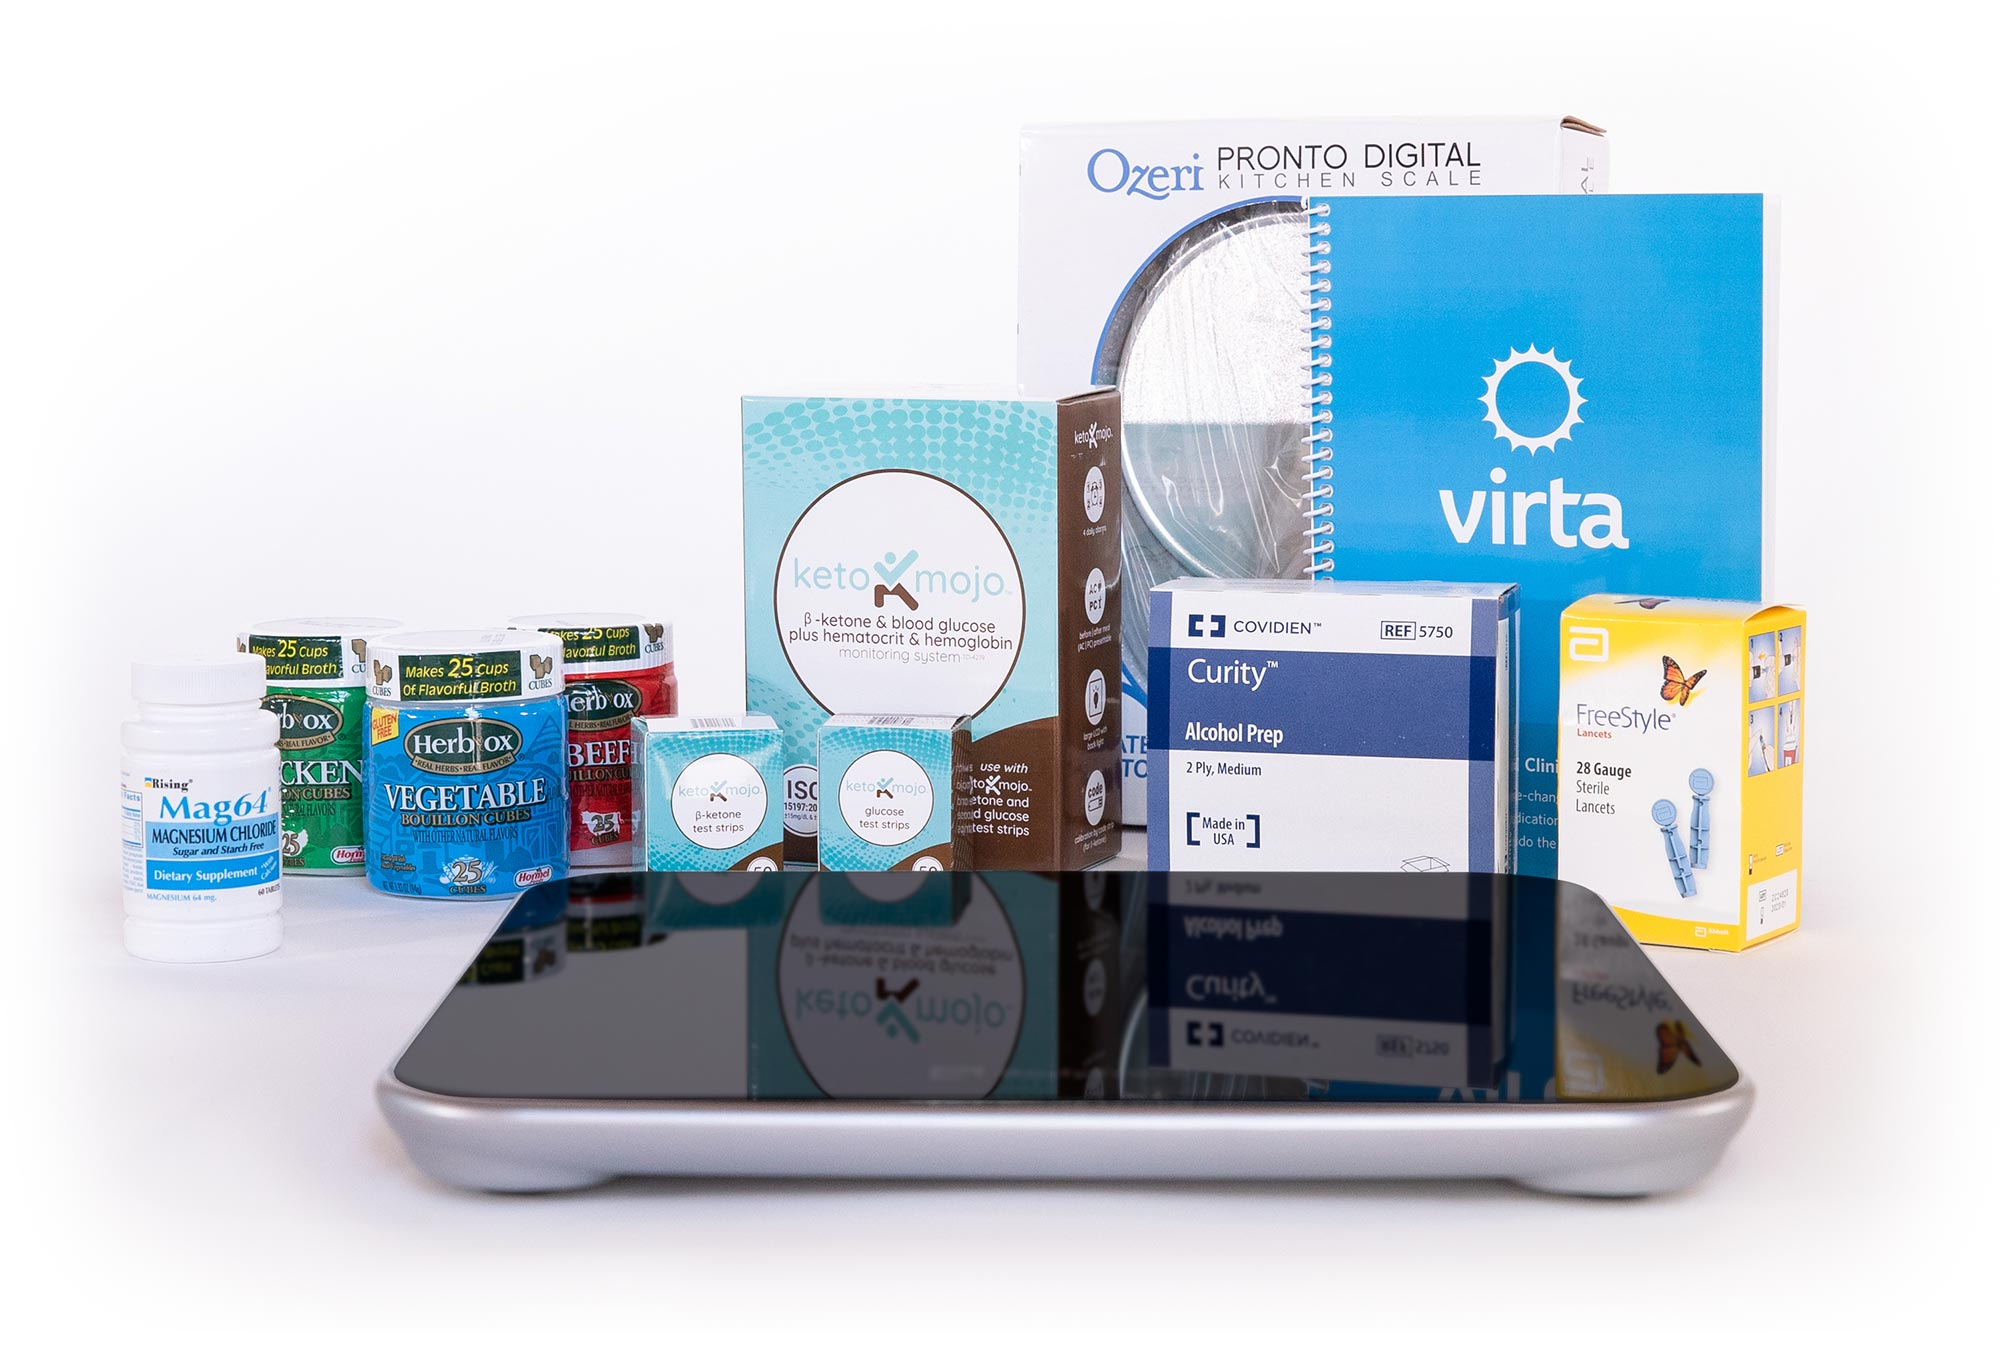 Virta starter kit contents on a white background